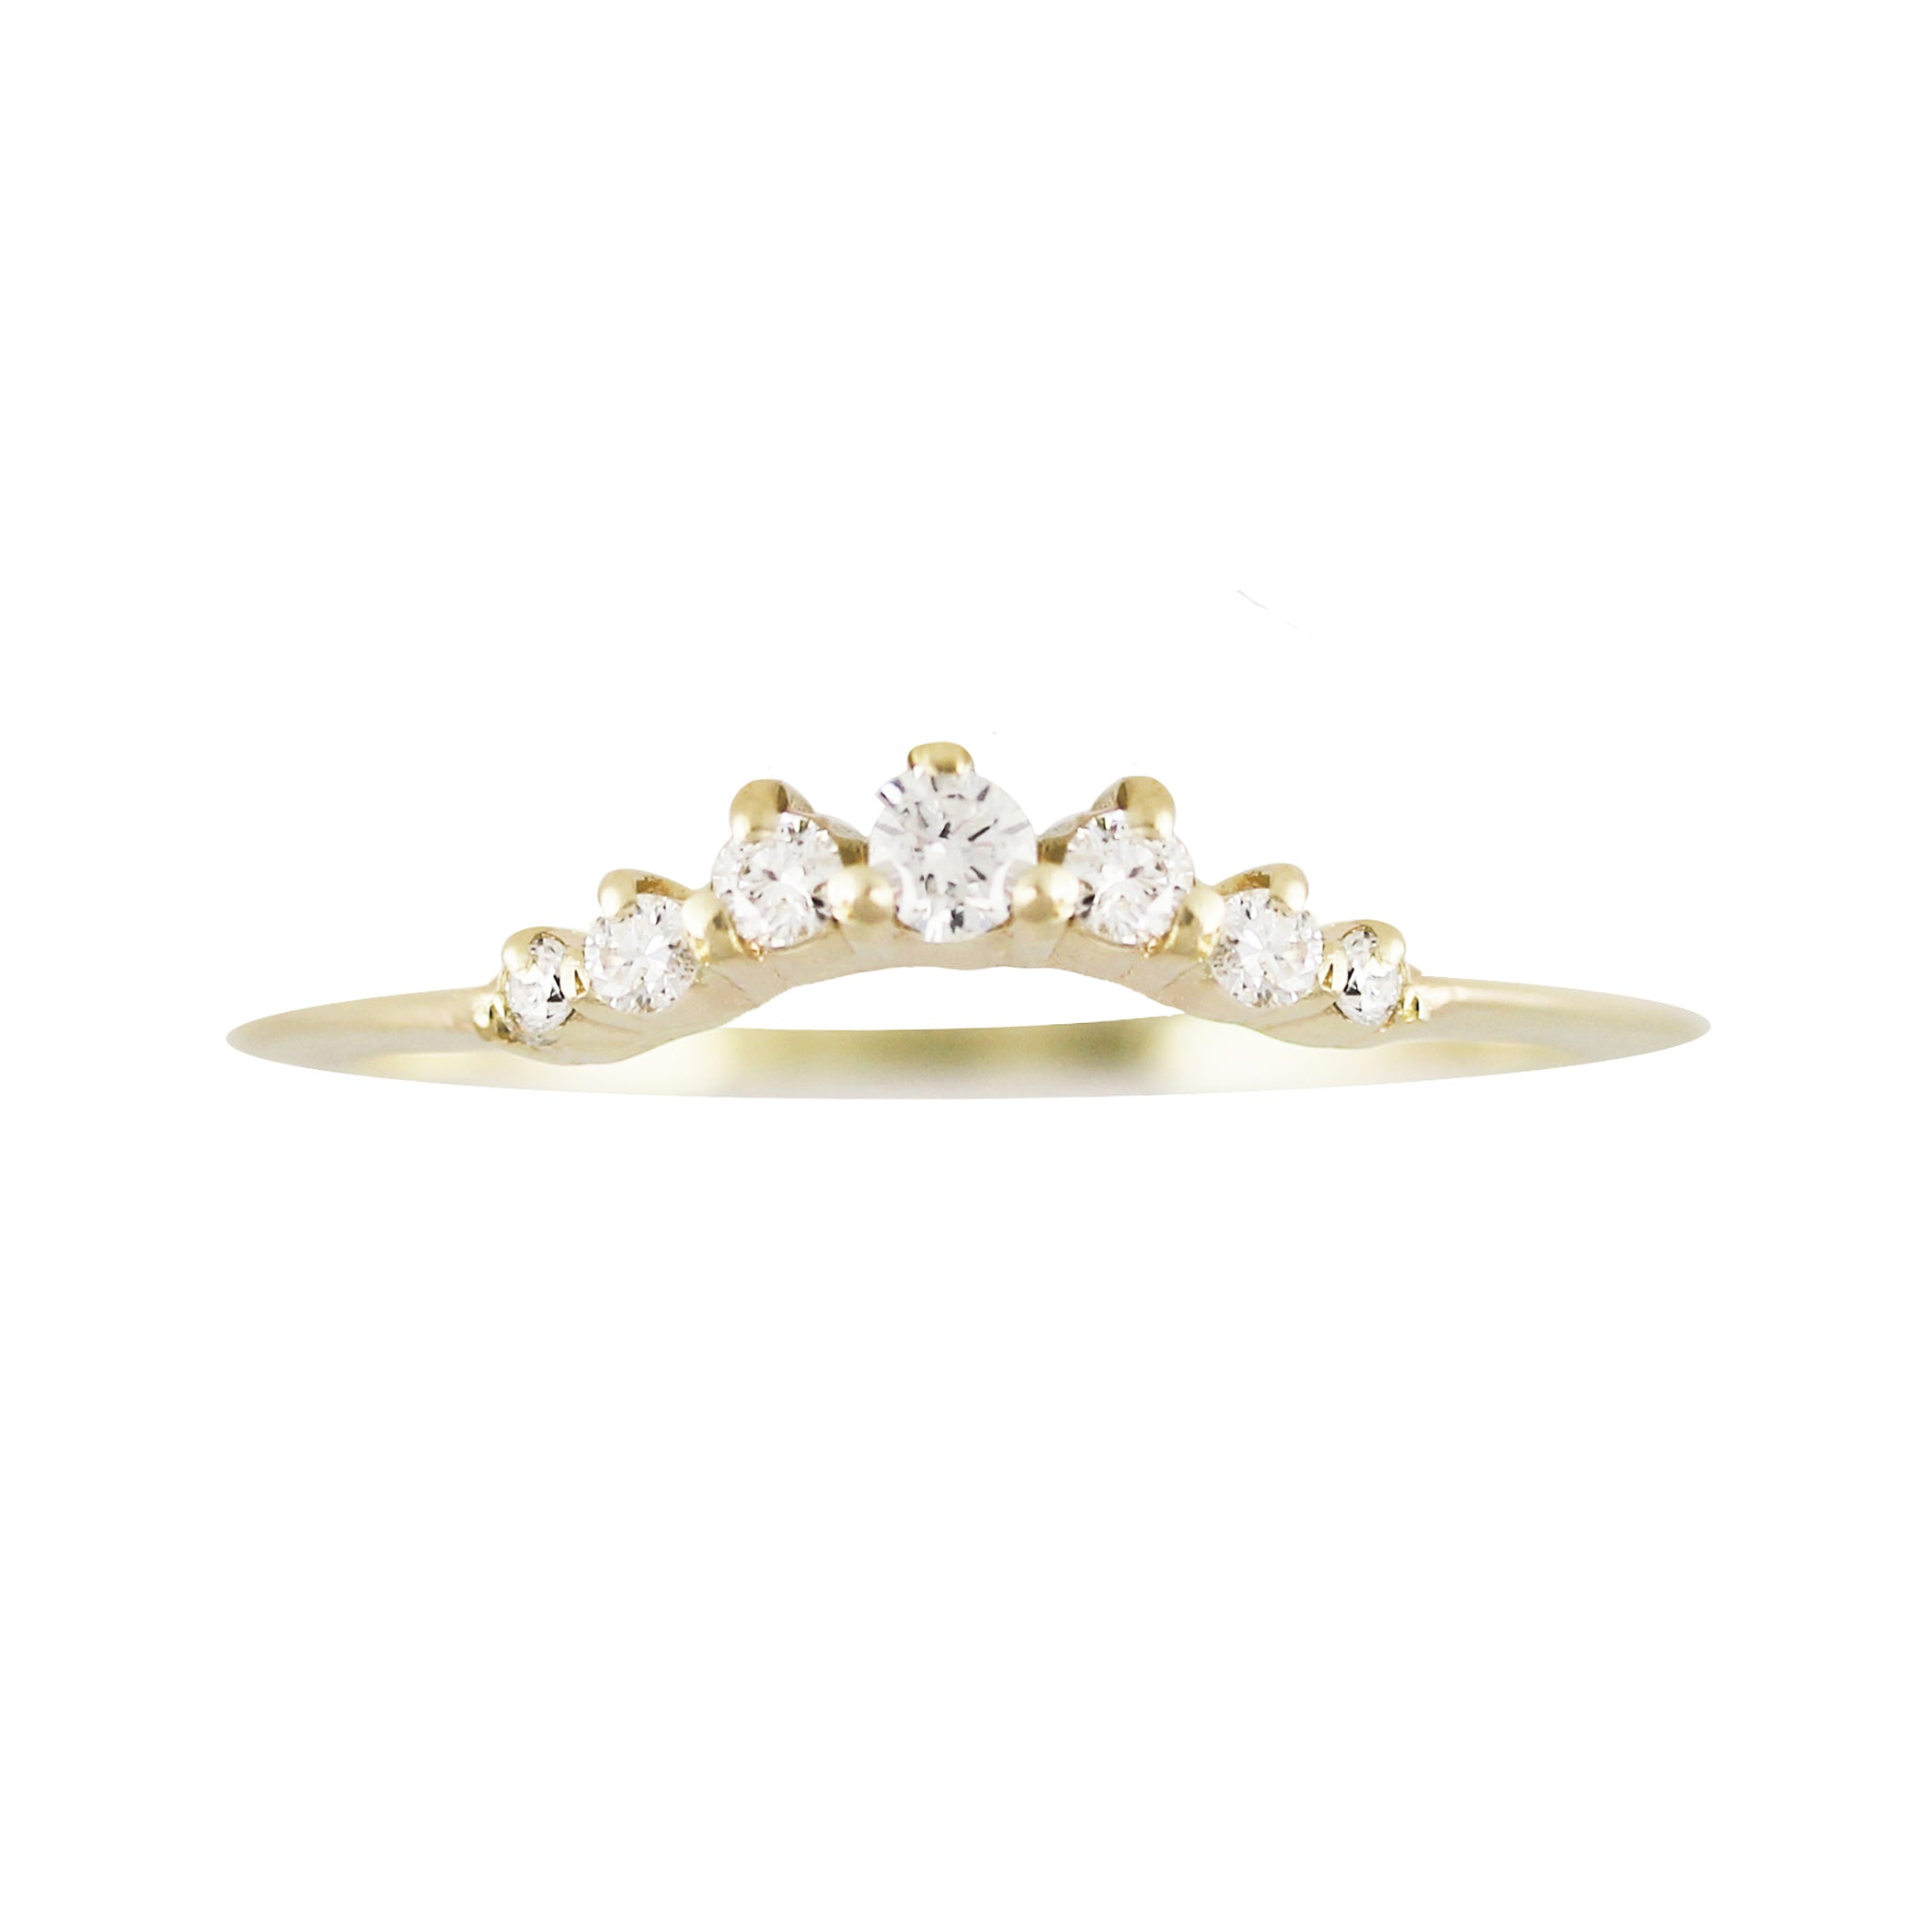 DIAMOND TIARA RING